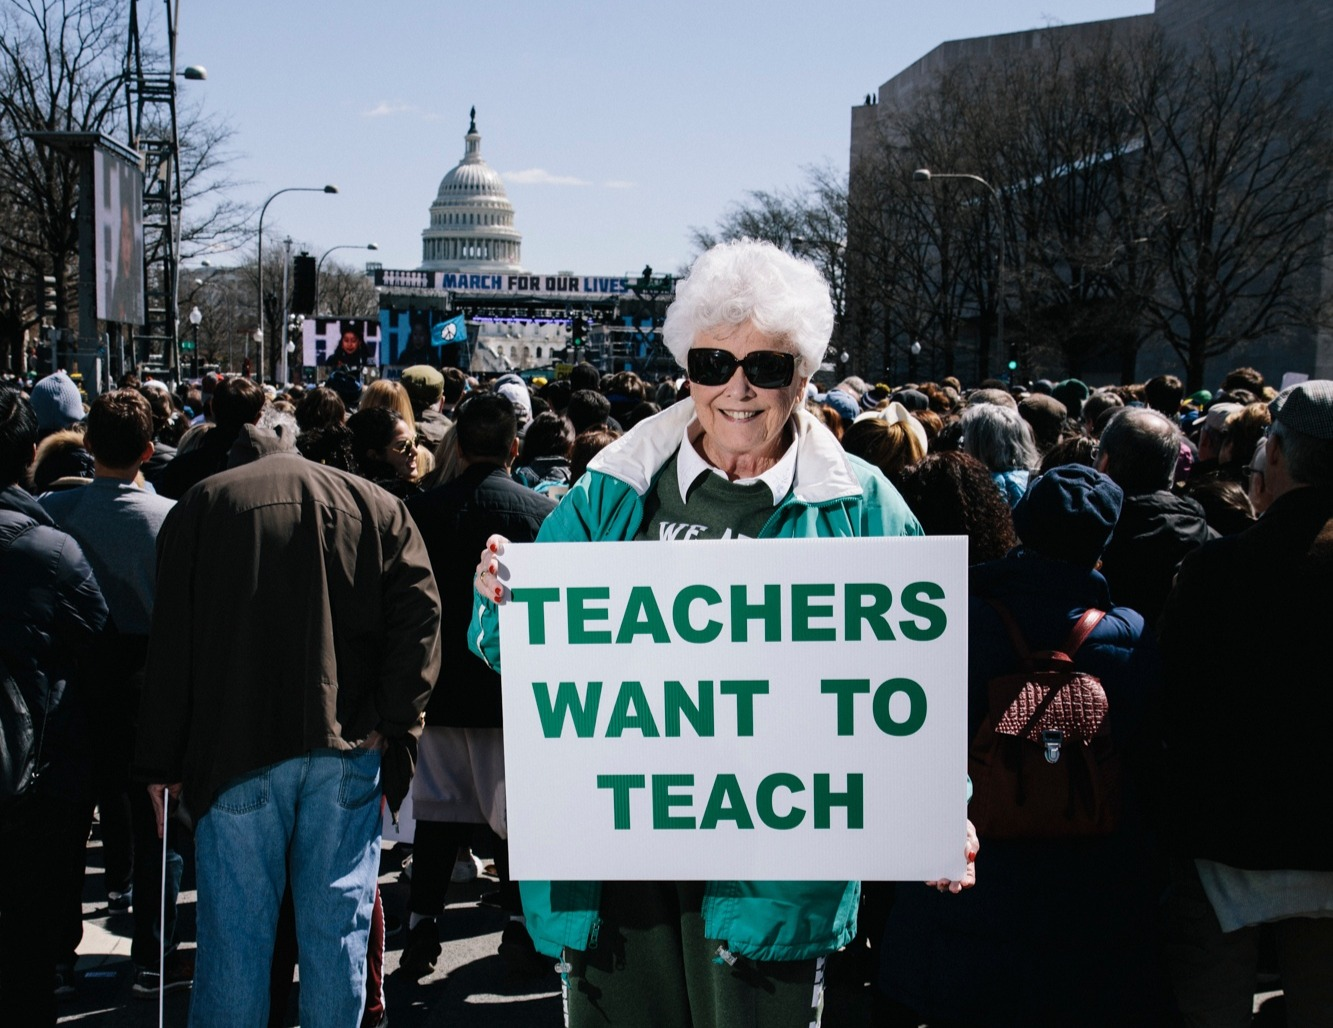 Teachers Want to Teach Big